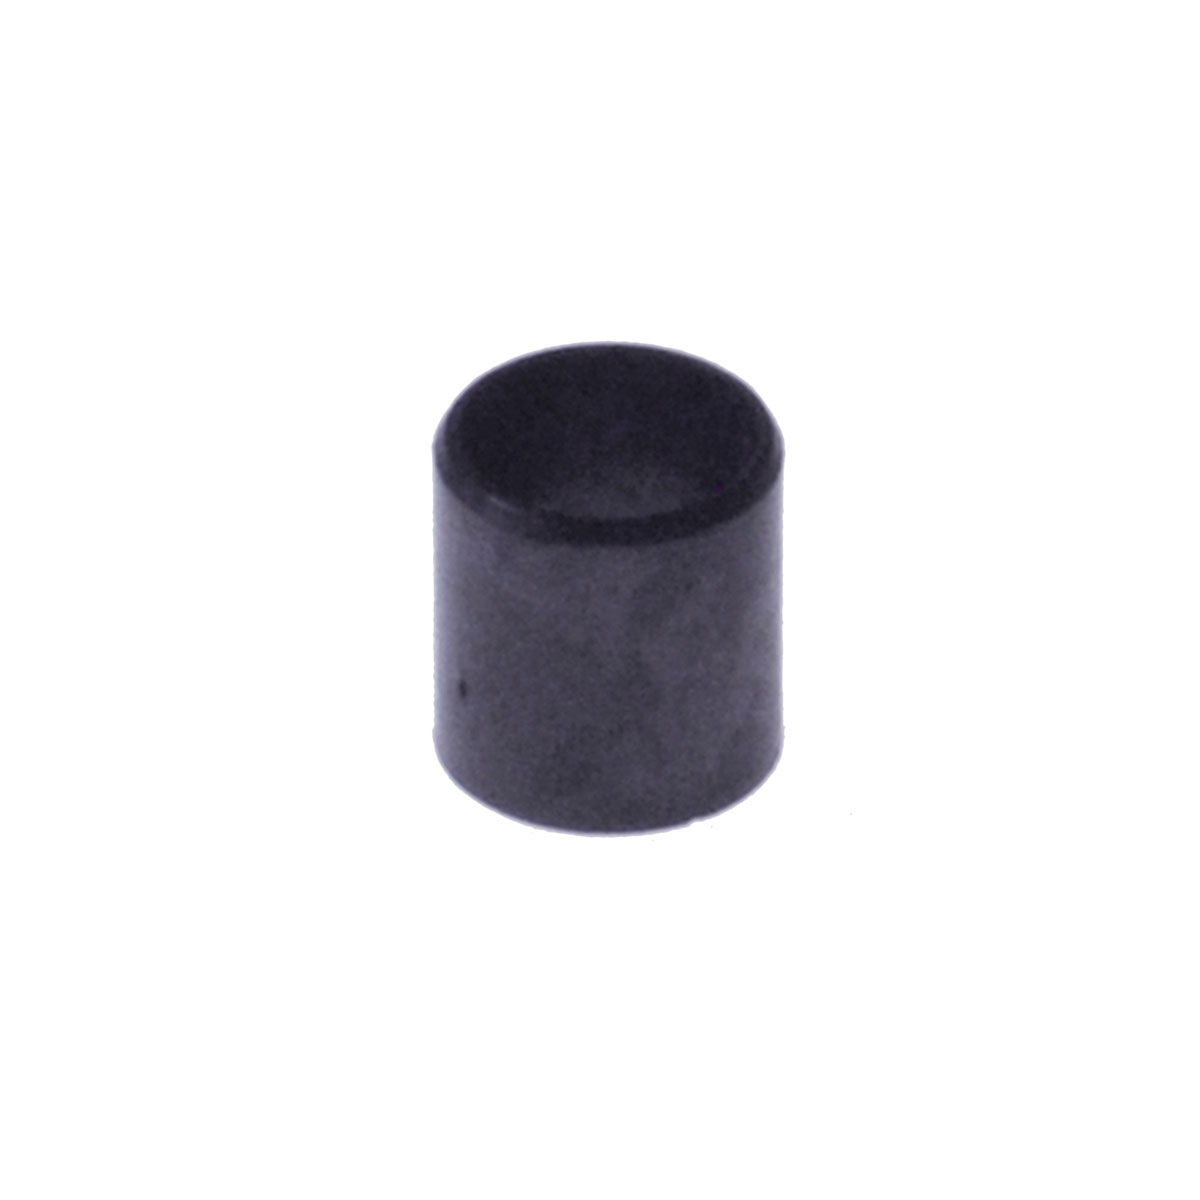 Torqeedo Bushing w/o collar 1214-15